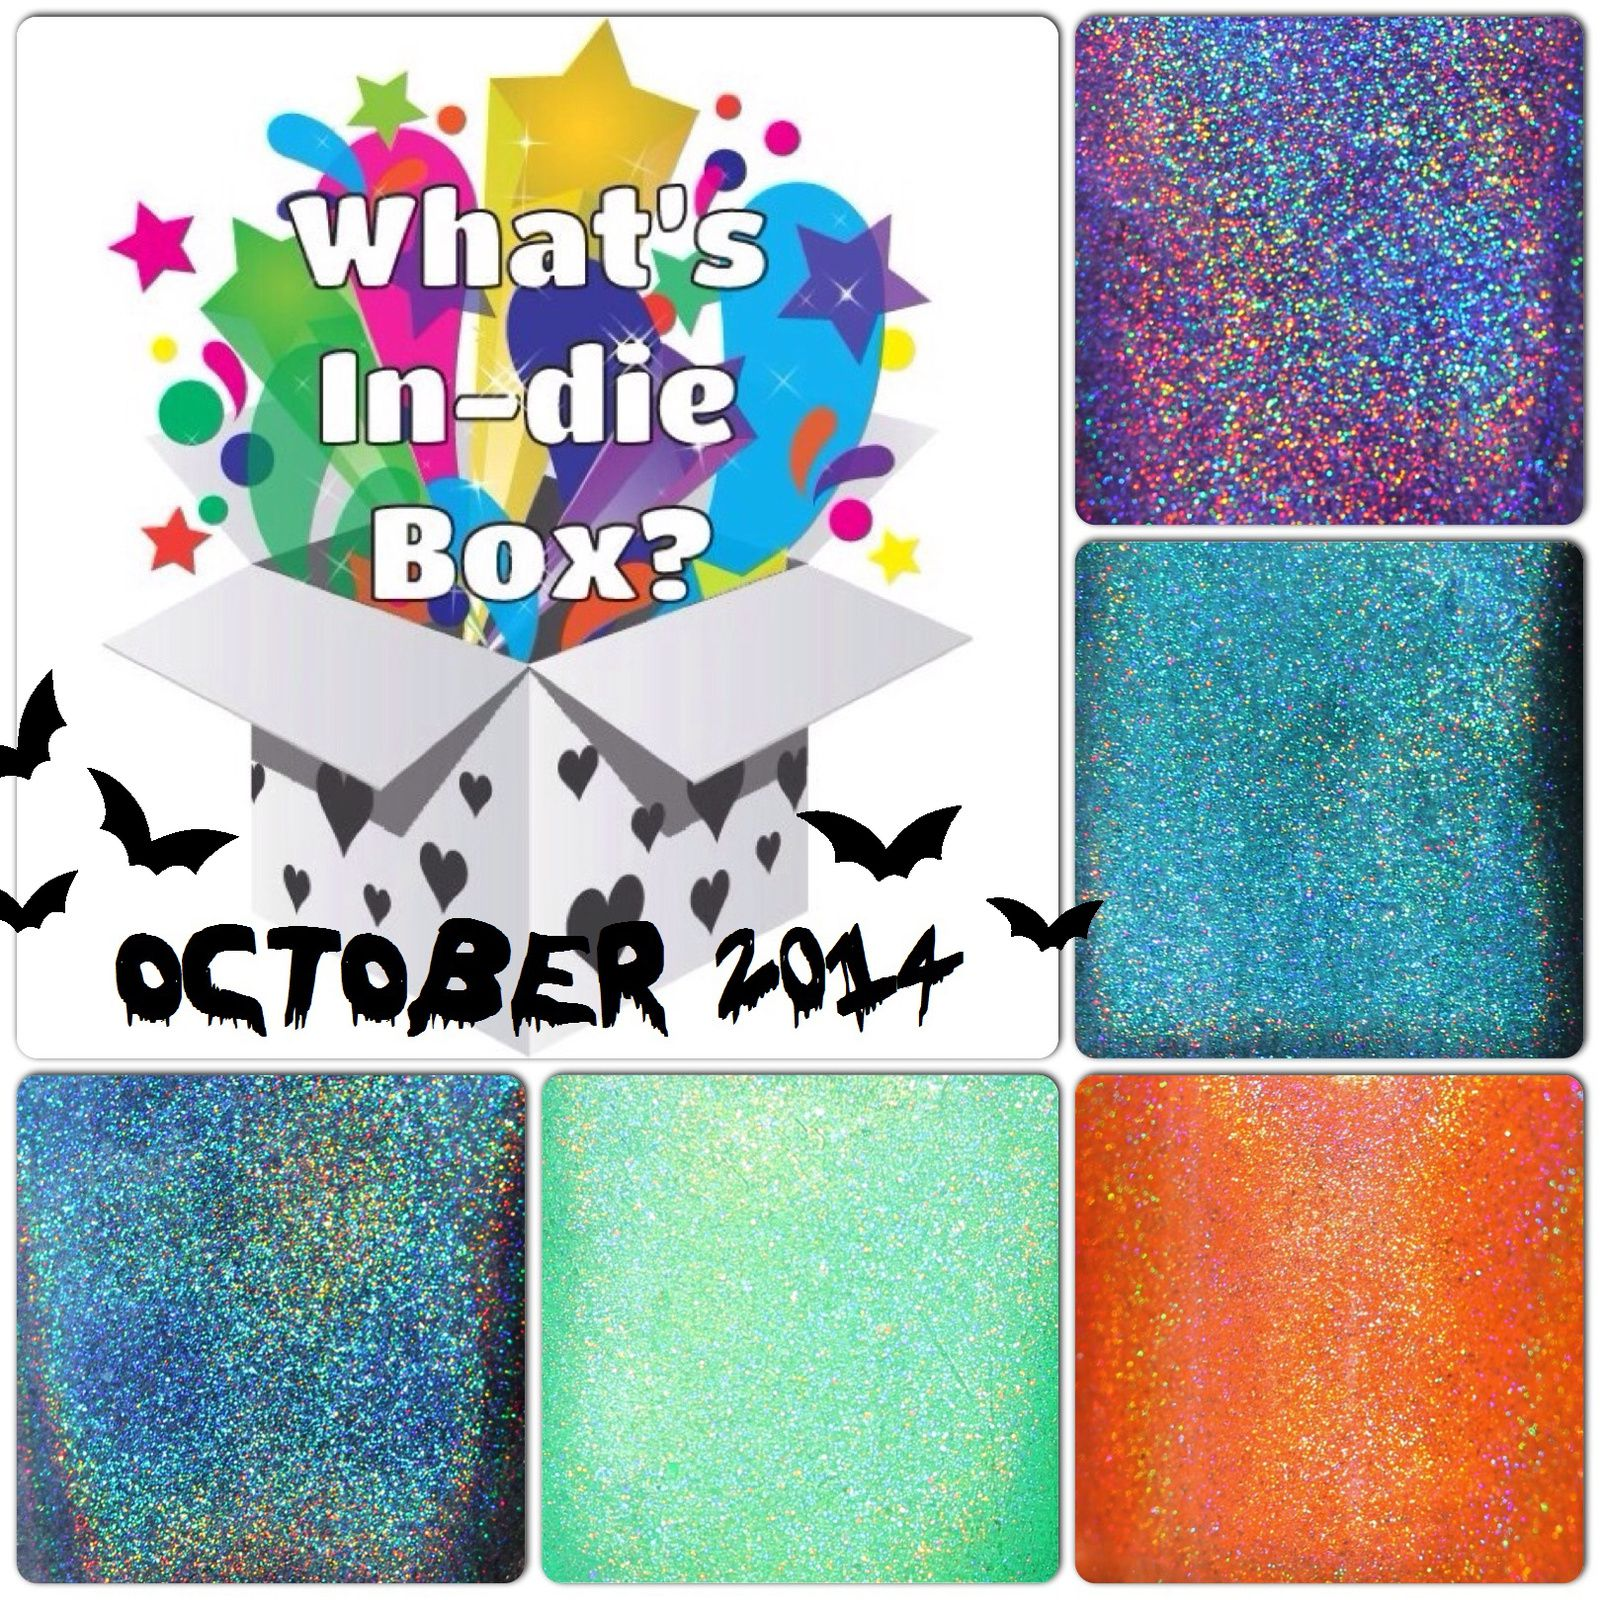 What's Indie Box October 2014 - Holoween